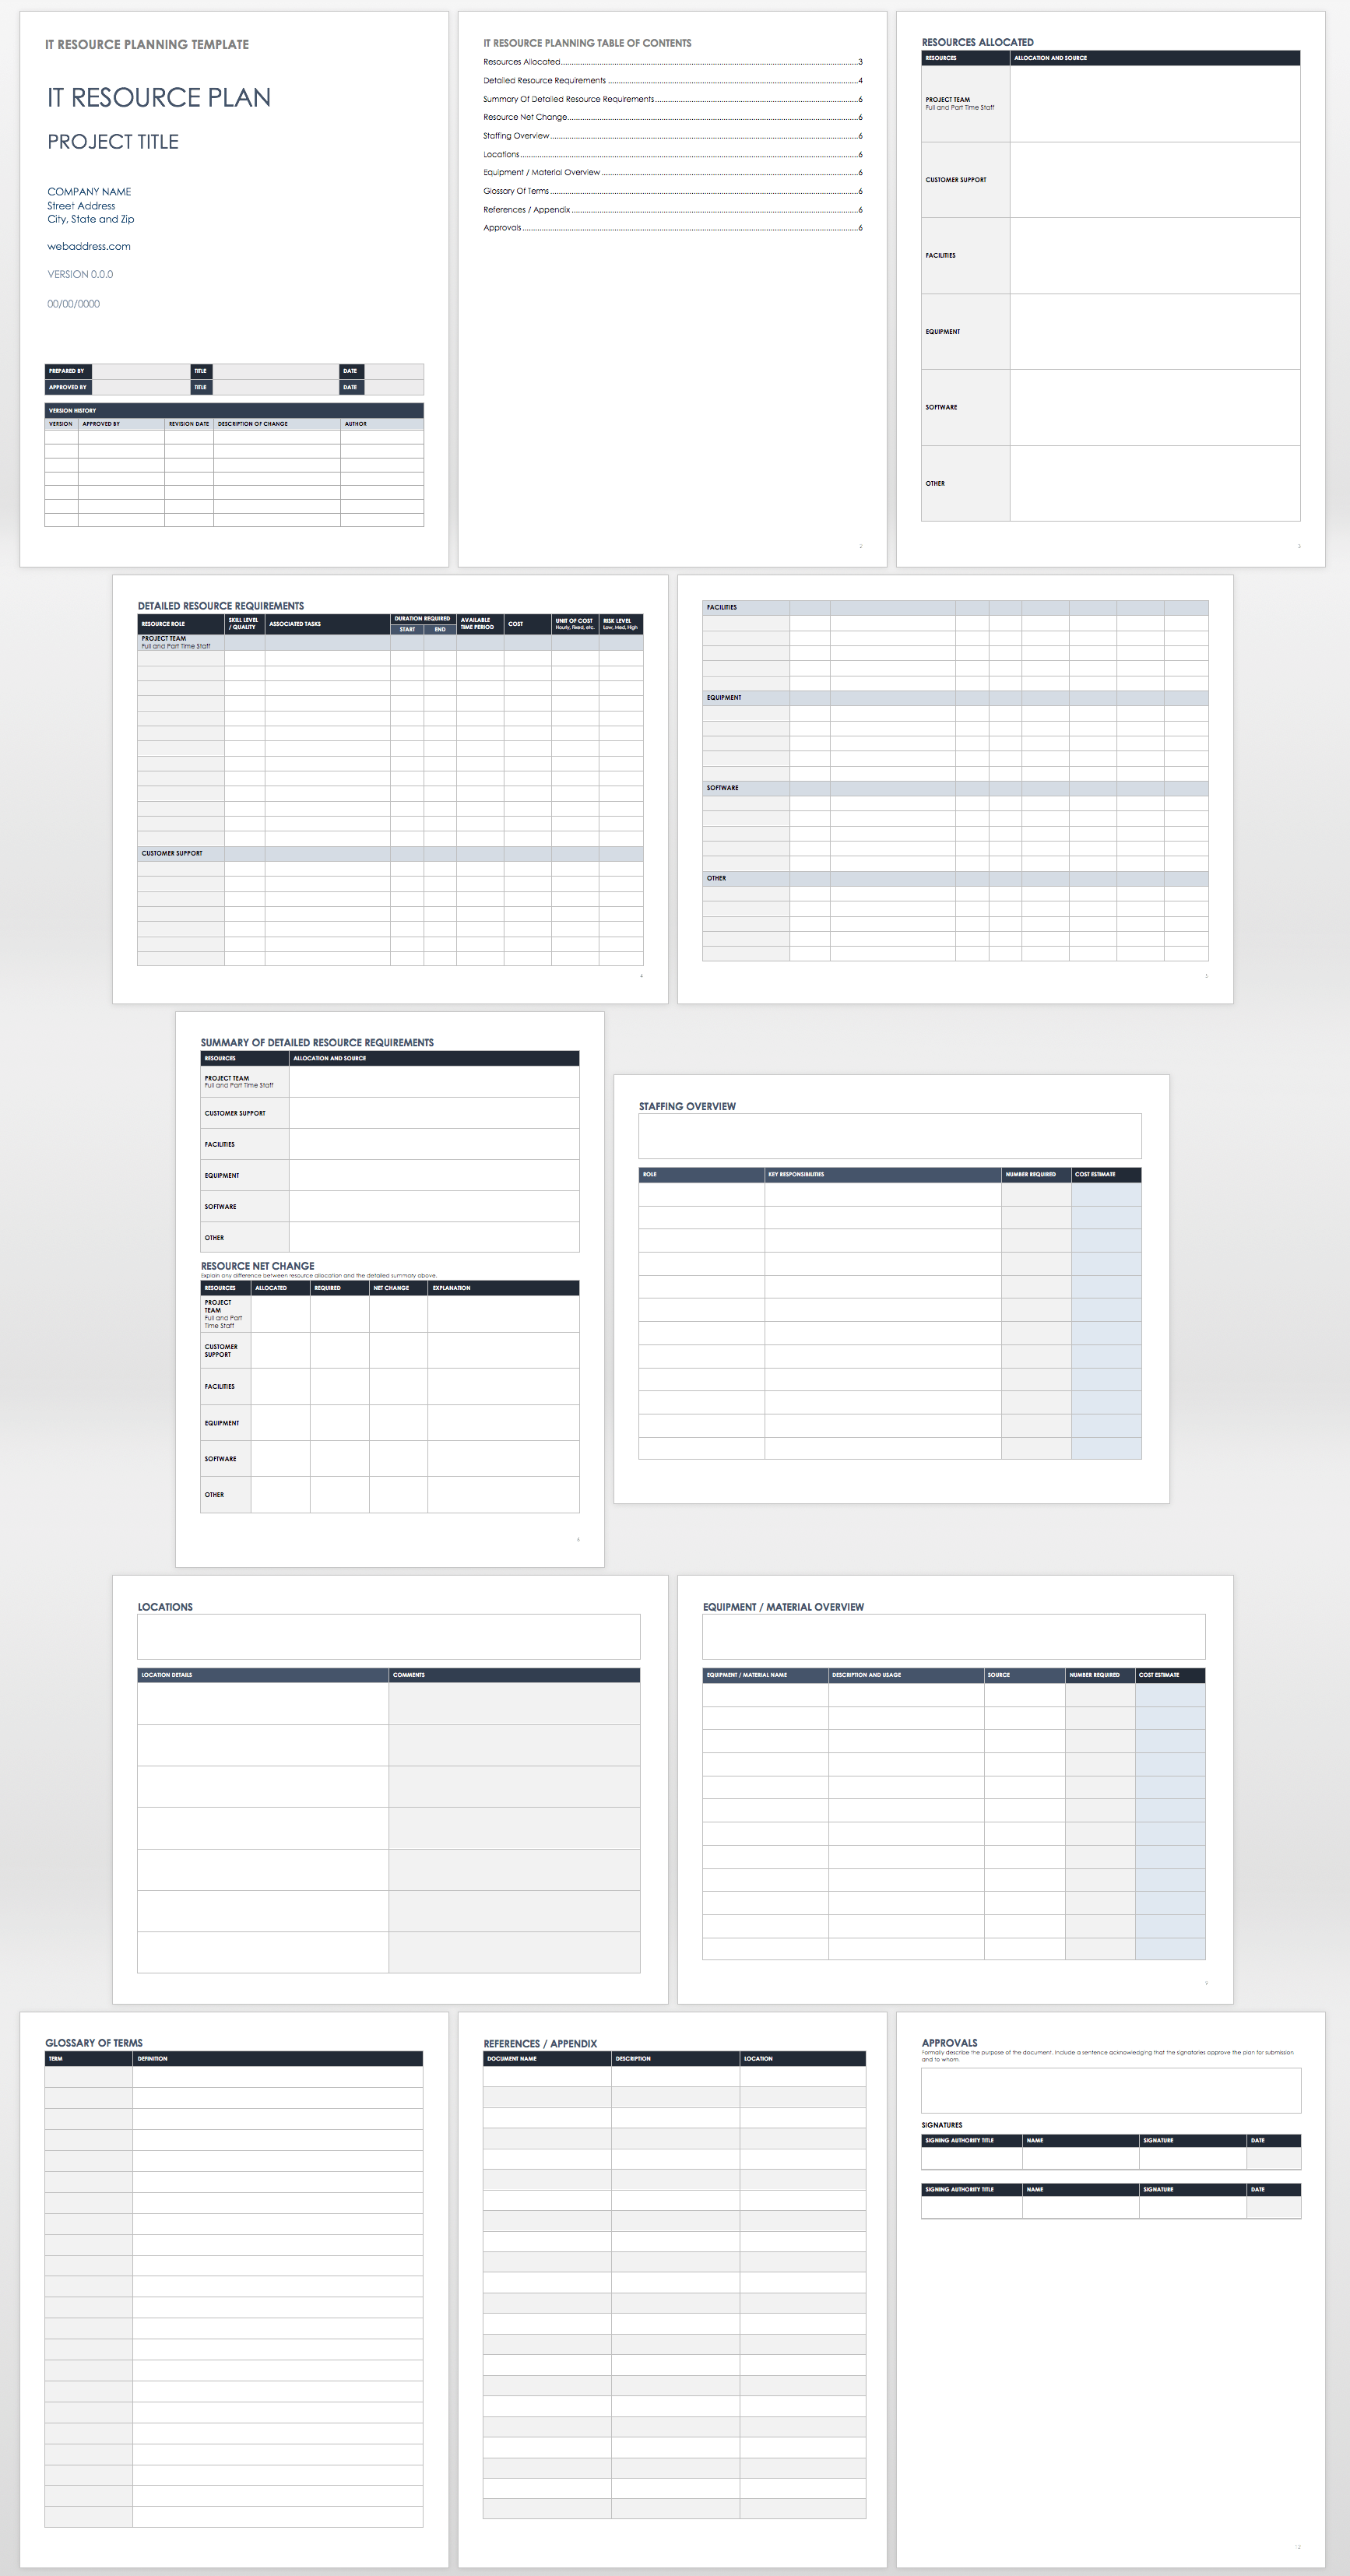 IT Resource Planning Template